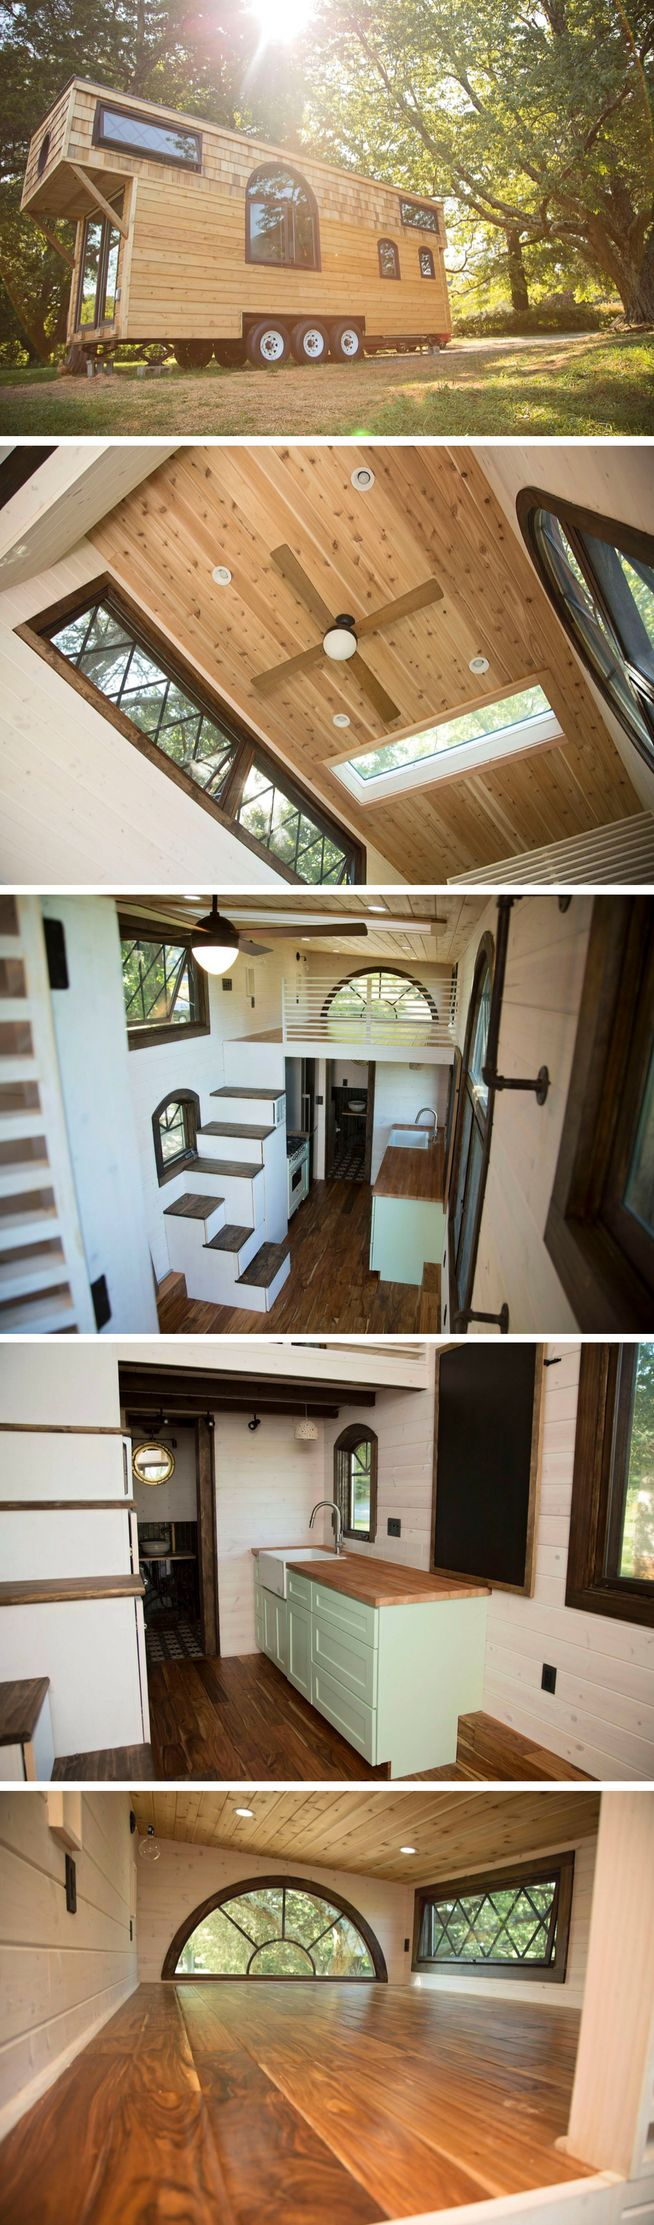 Astounding 17 Best Ideas About Tiny House Interiors On Pinterest Tiny House Largest Home Design Picture Inspirations Pitcheantrous